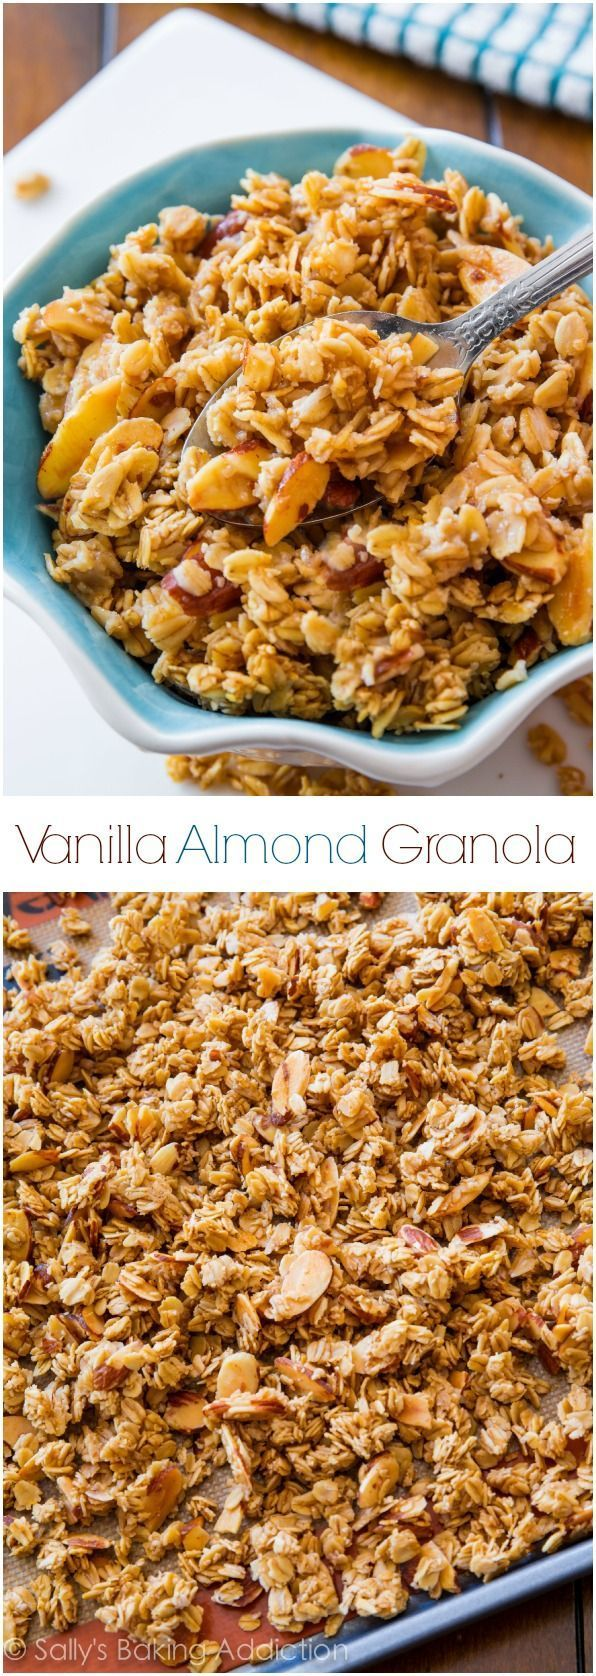 Ditch store-bought, healthy homemade granola is easy! You will love this Vanilla Almond Granola @Sally Quinn